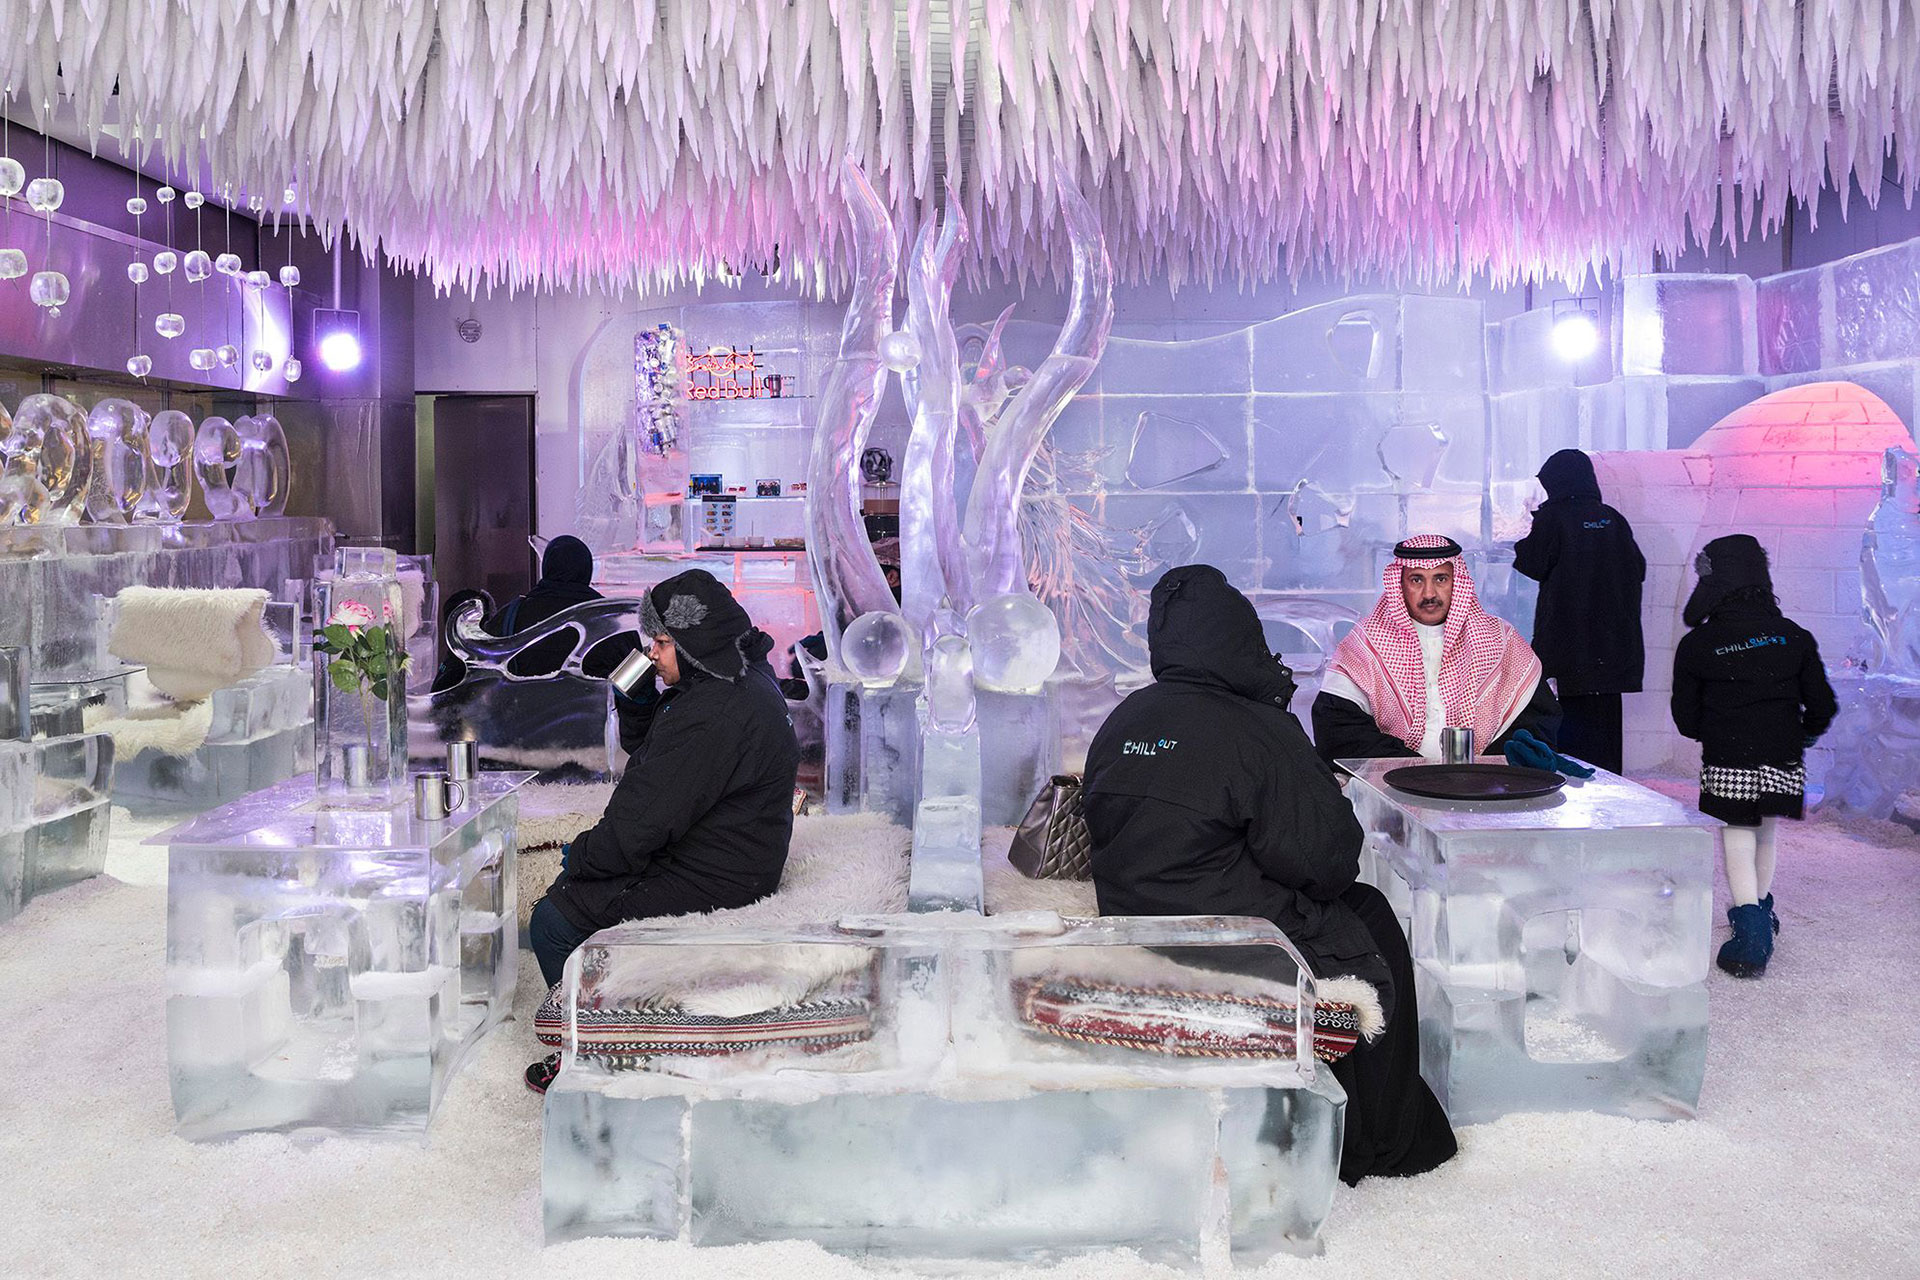 Chillout Ice Lounge, Dubai, January 2016. Saudi tourists having a hot chocolate at the Chillout Ice Lounge, the first ice lounge in the Middle East. Complete with ice sculptures, ice seating and tables, all at a subzero temperature. © Nick Hannes.